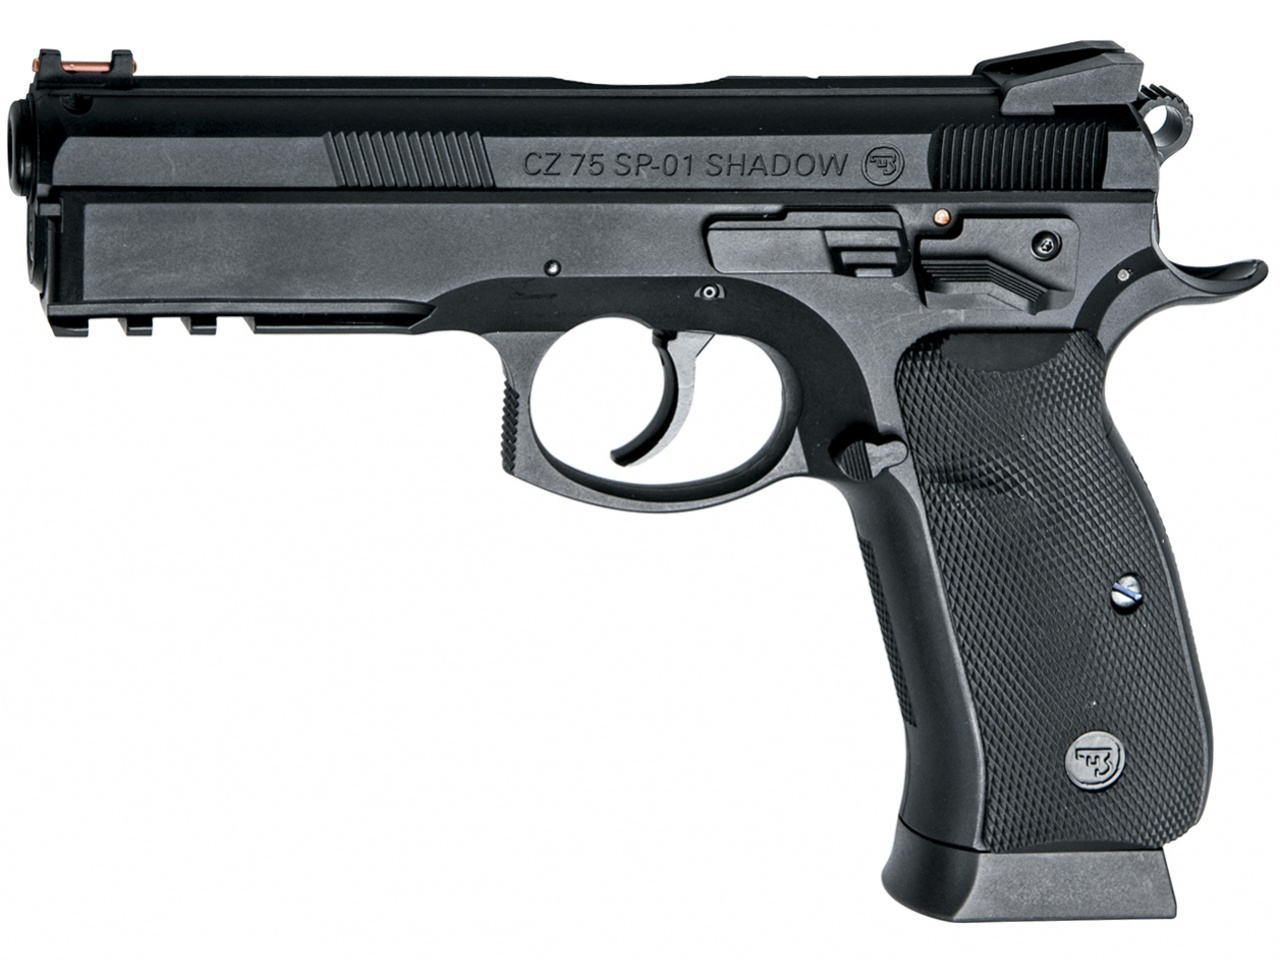 Wiatrówka CZ-75 SP-01 Shadow